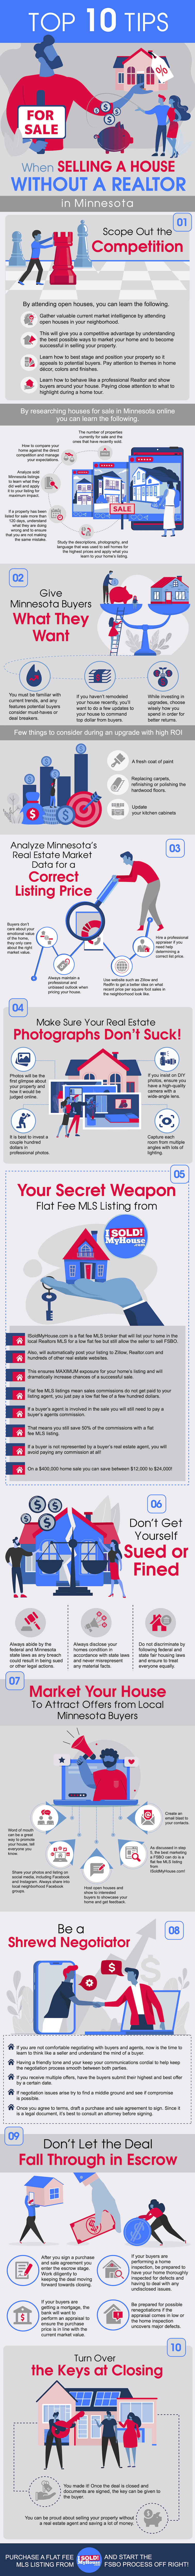 infographic of the 10 steps to sell a house in minnesota without an agent